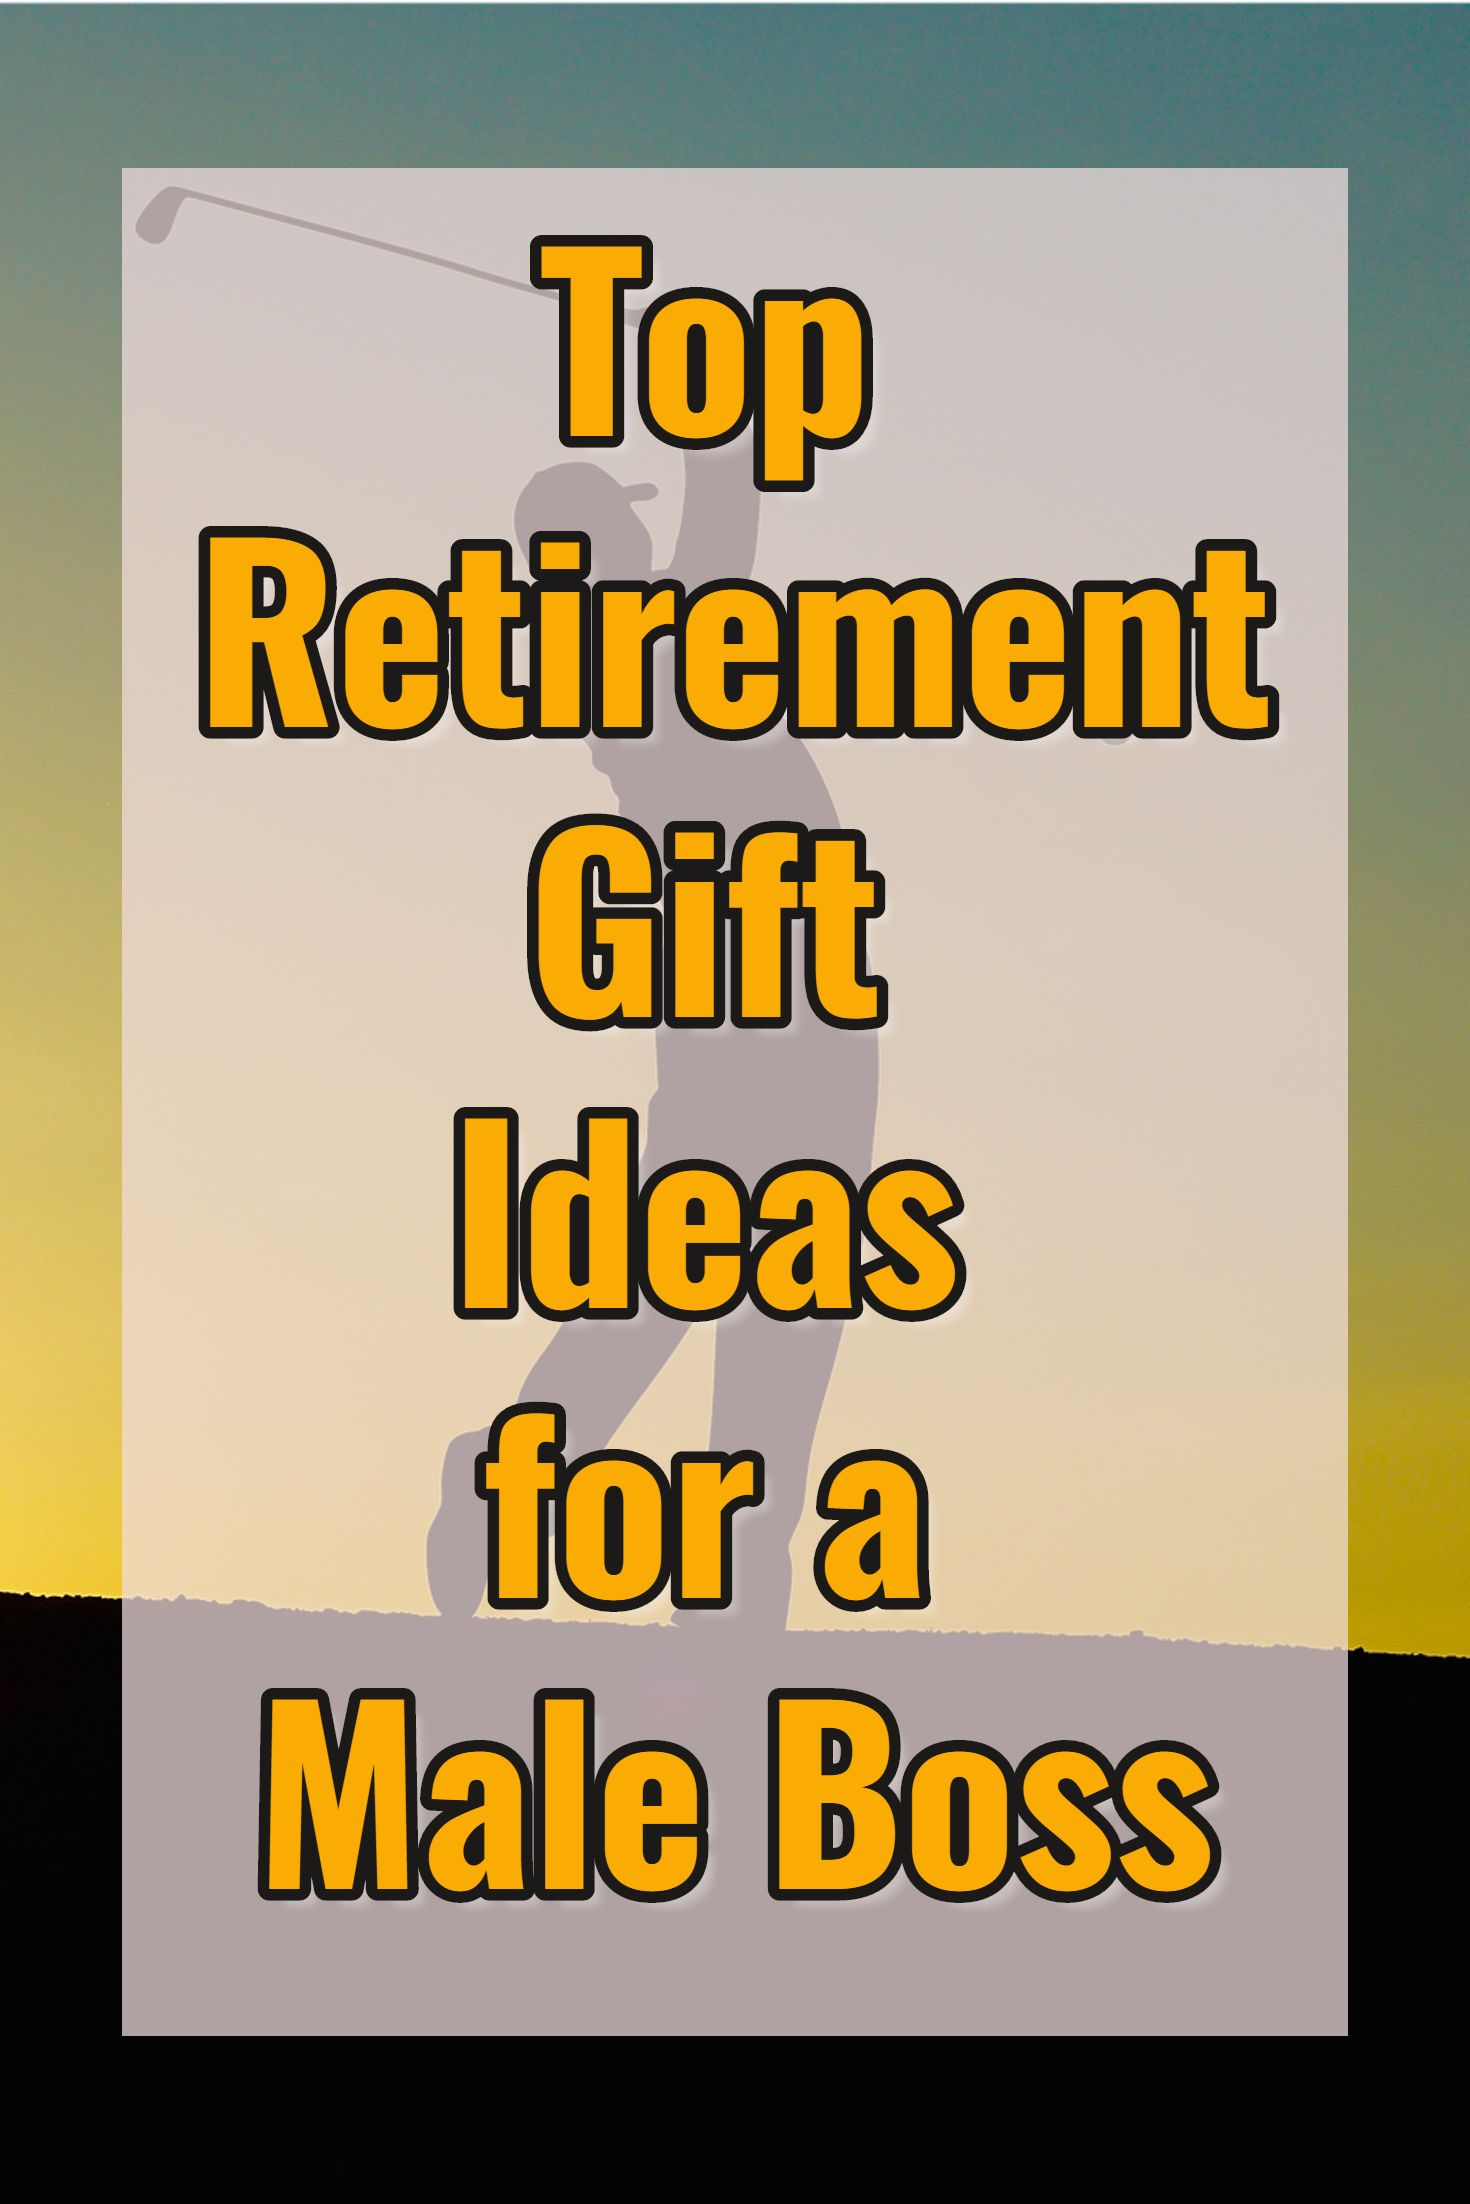 Male boss christmas gift ideas